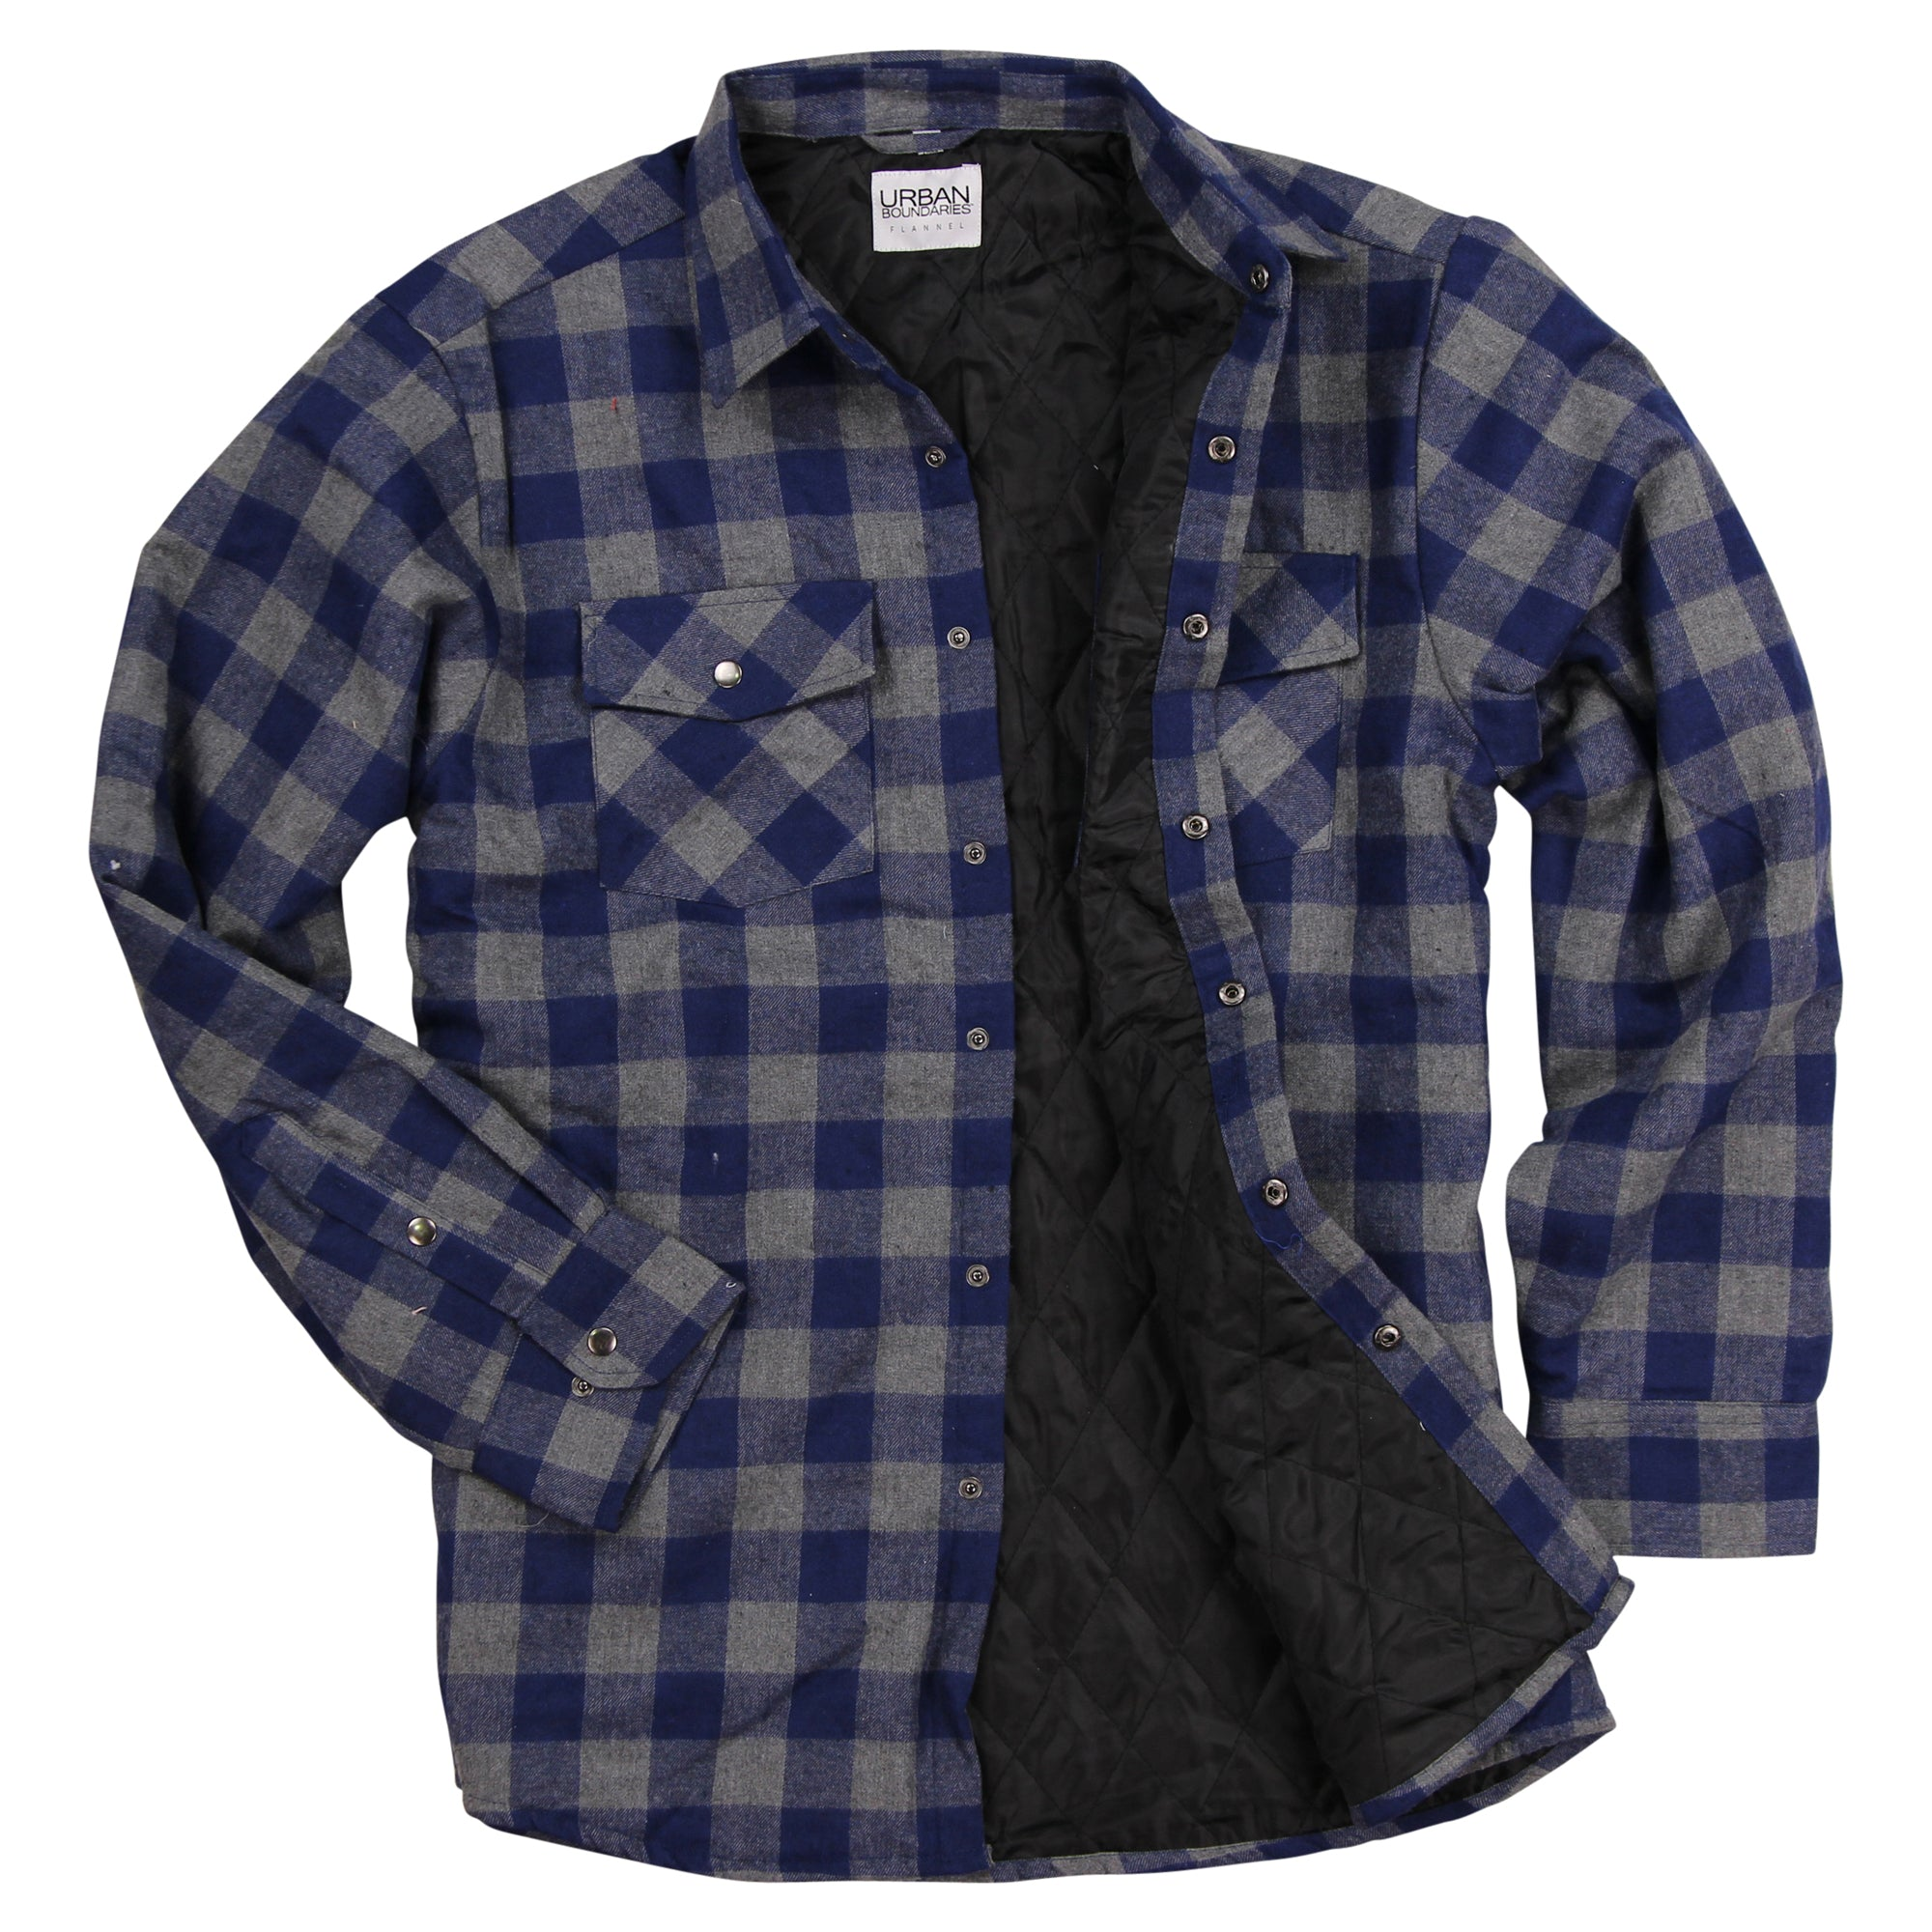 2019 original large discount detailed pictures Men's Insulated Flannel Shirt Jacket -